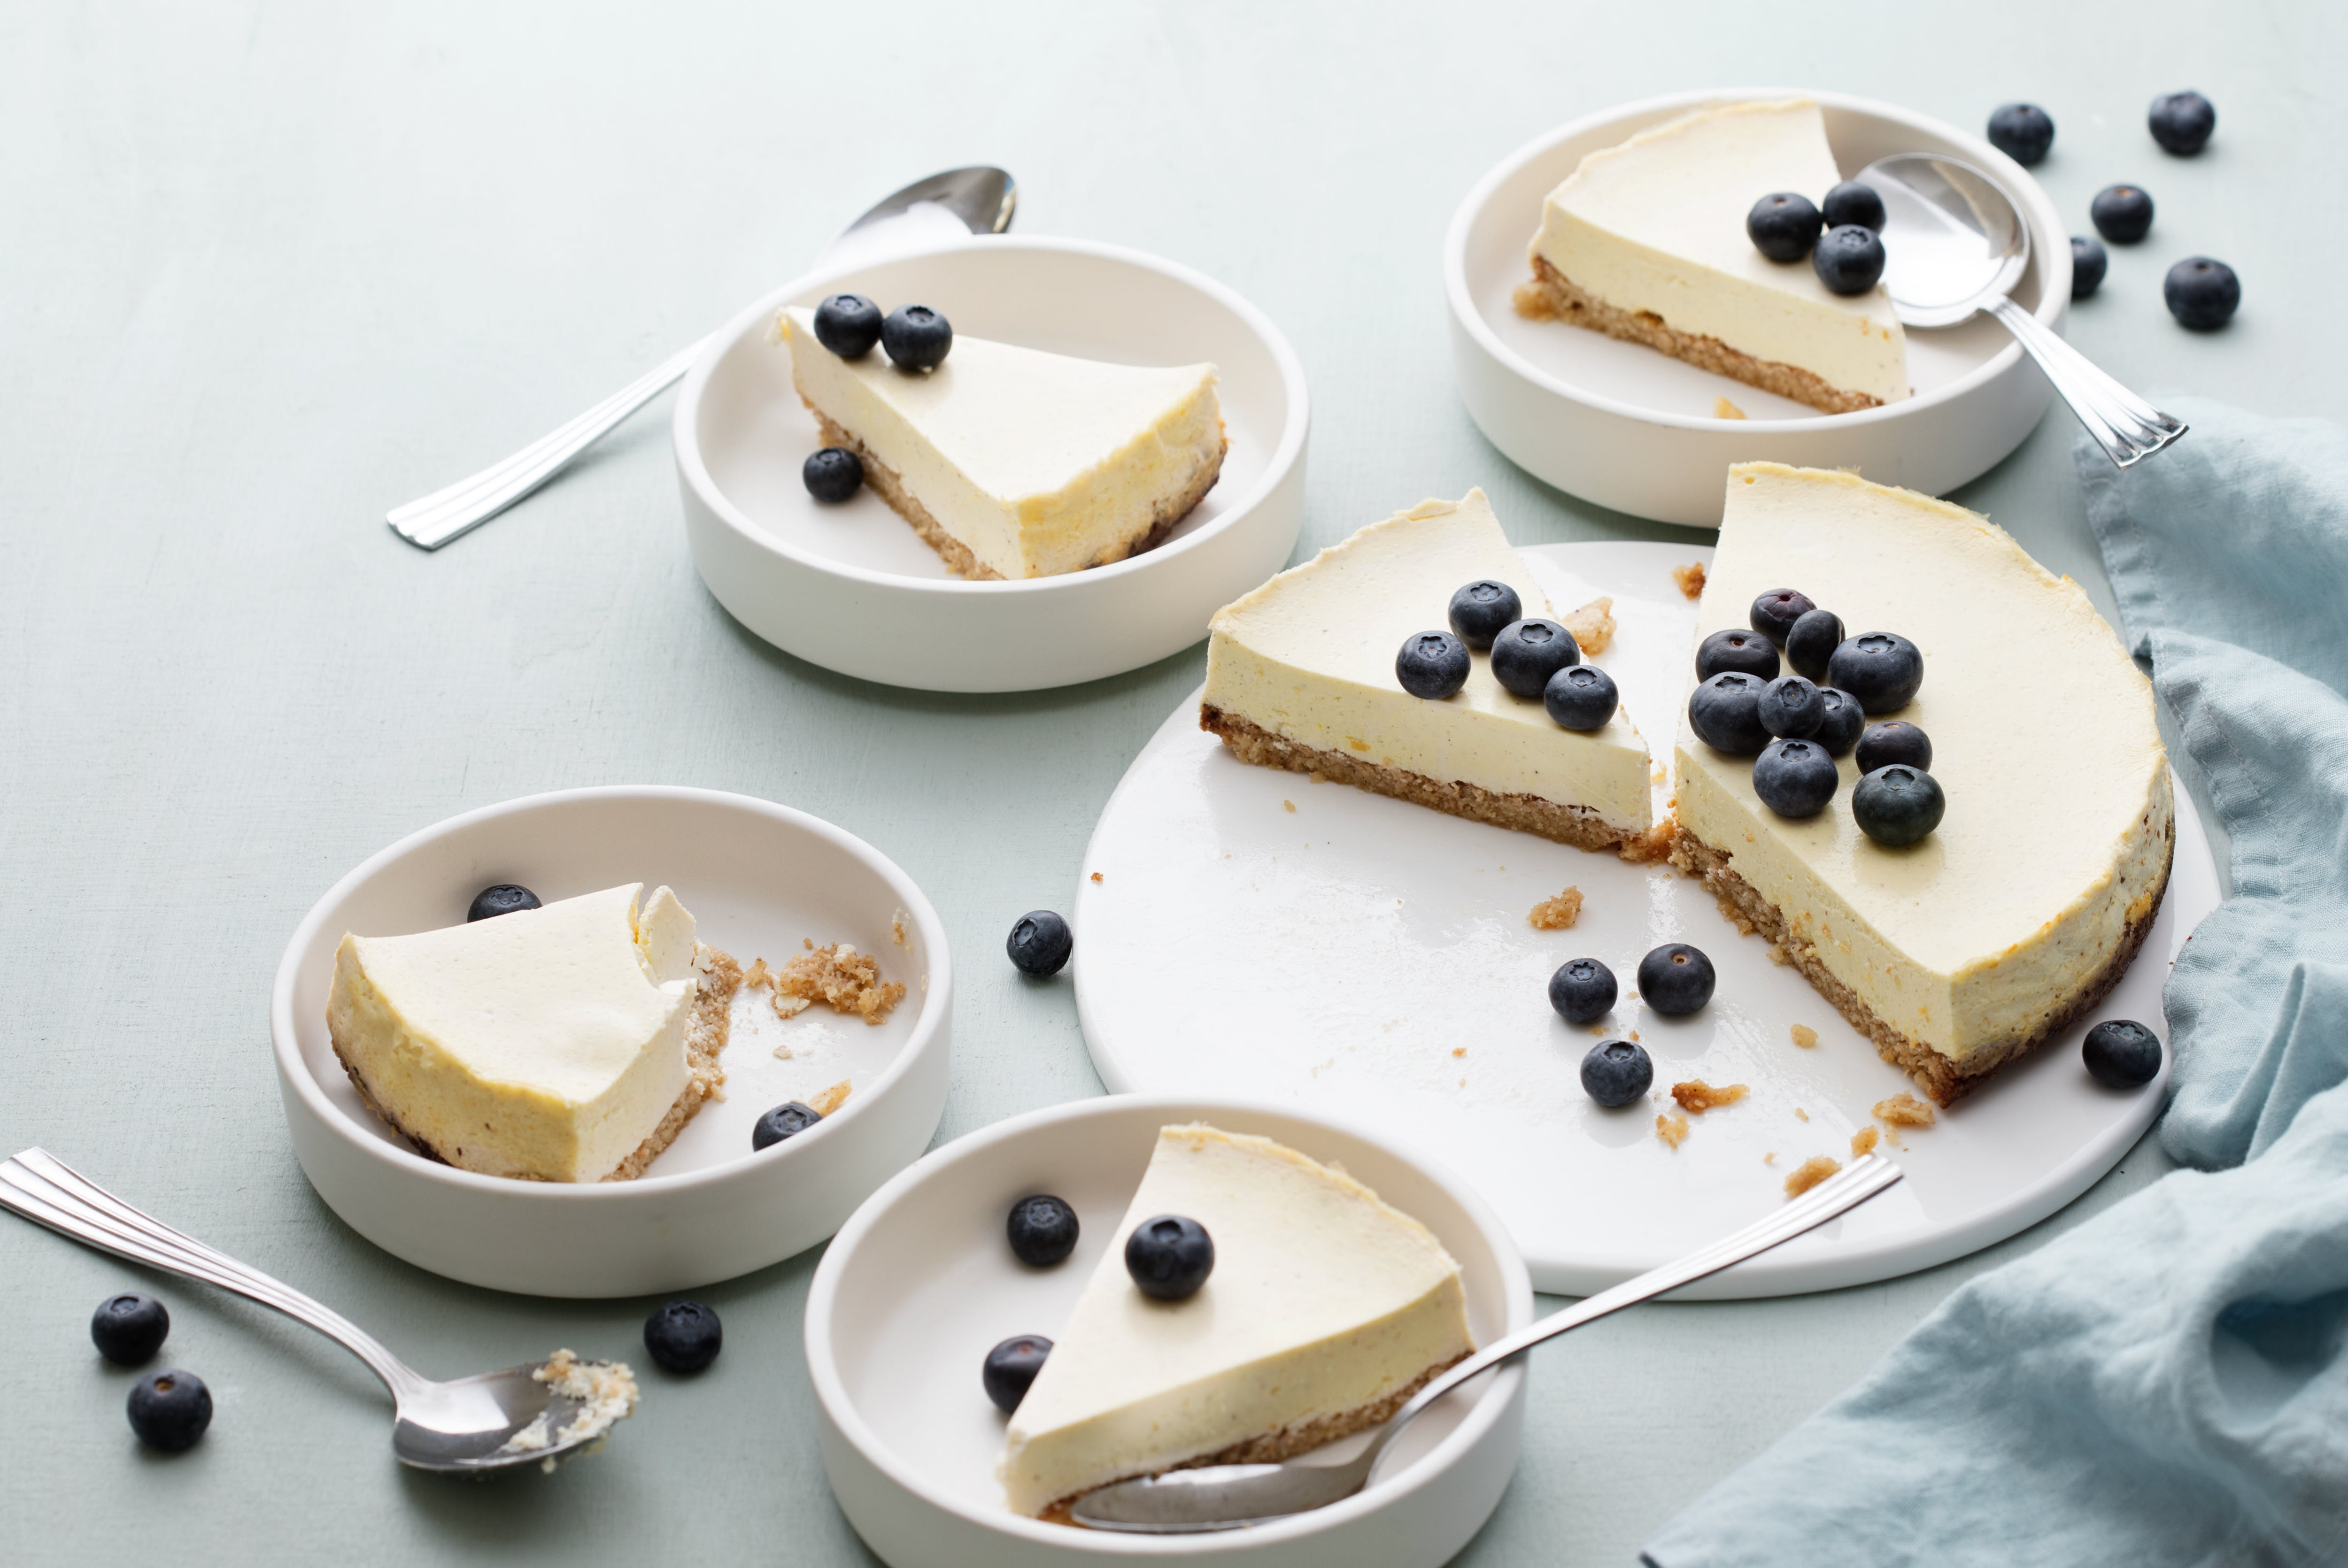 Keto cheesecake with blueberries